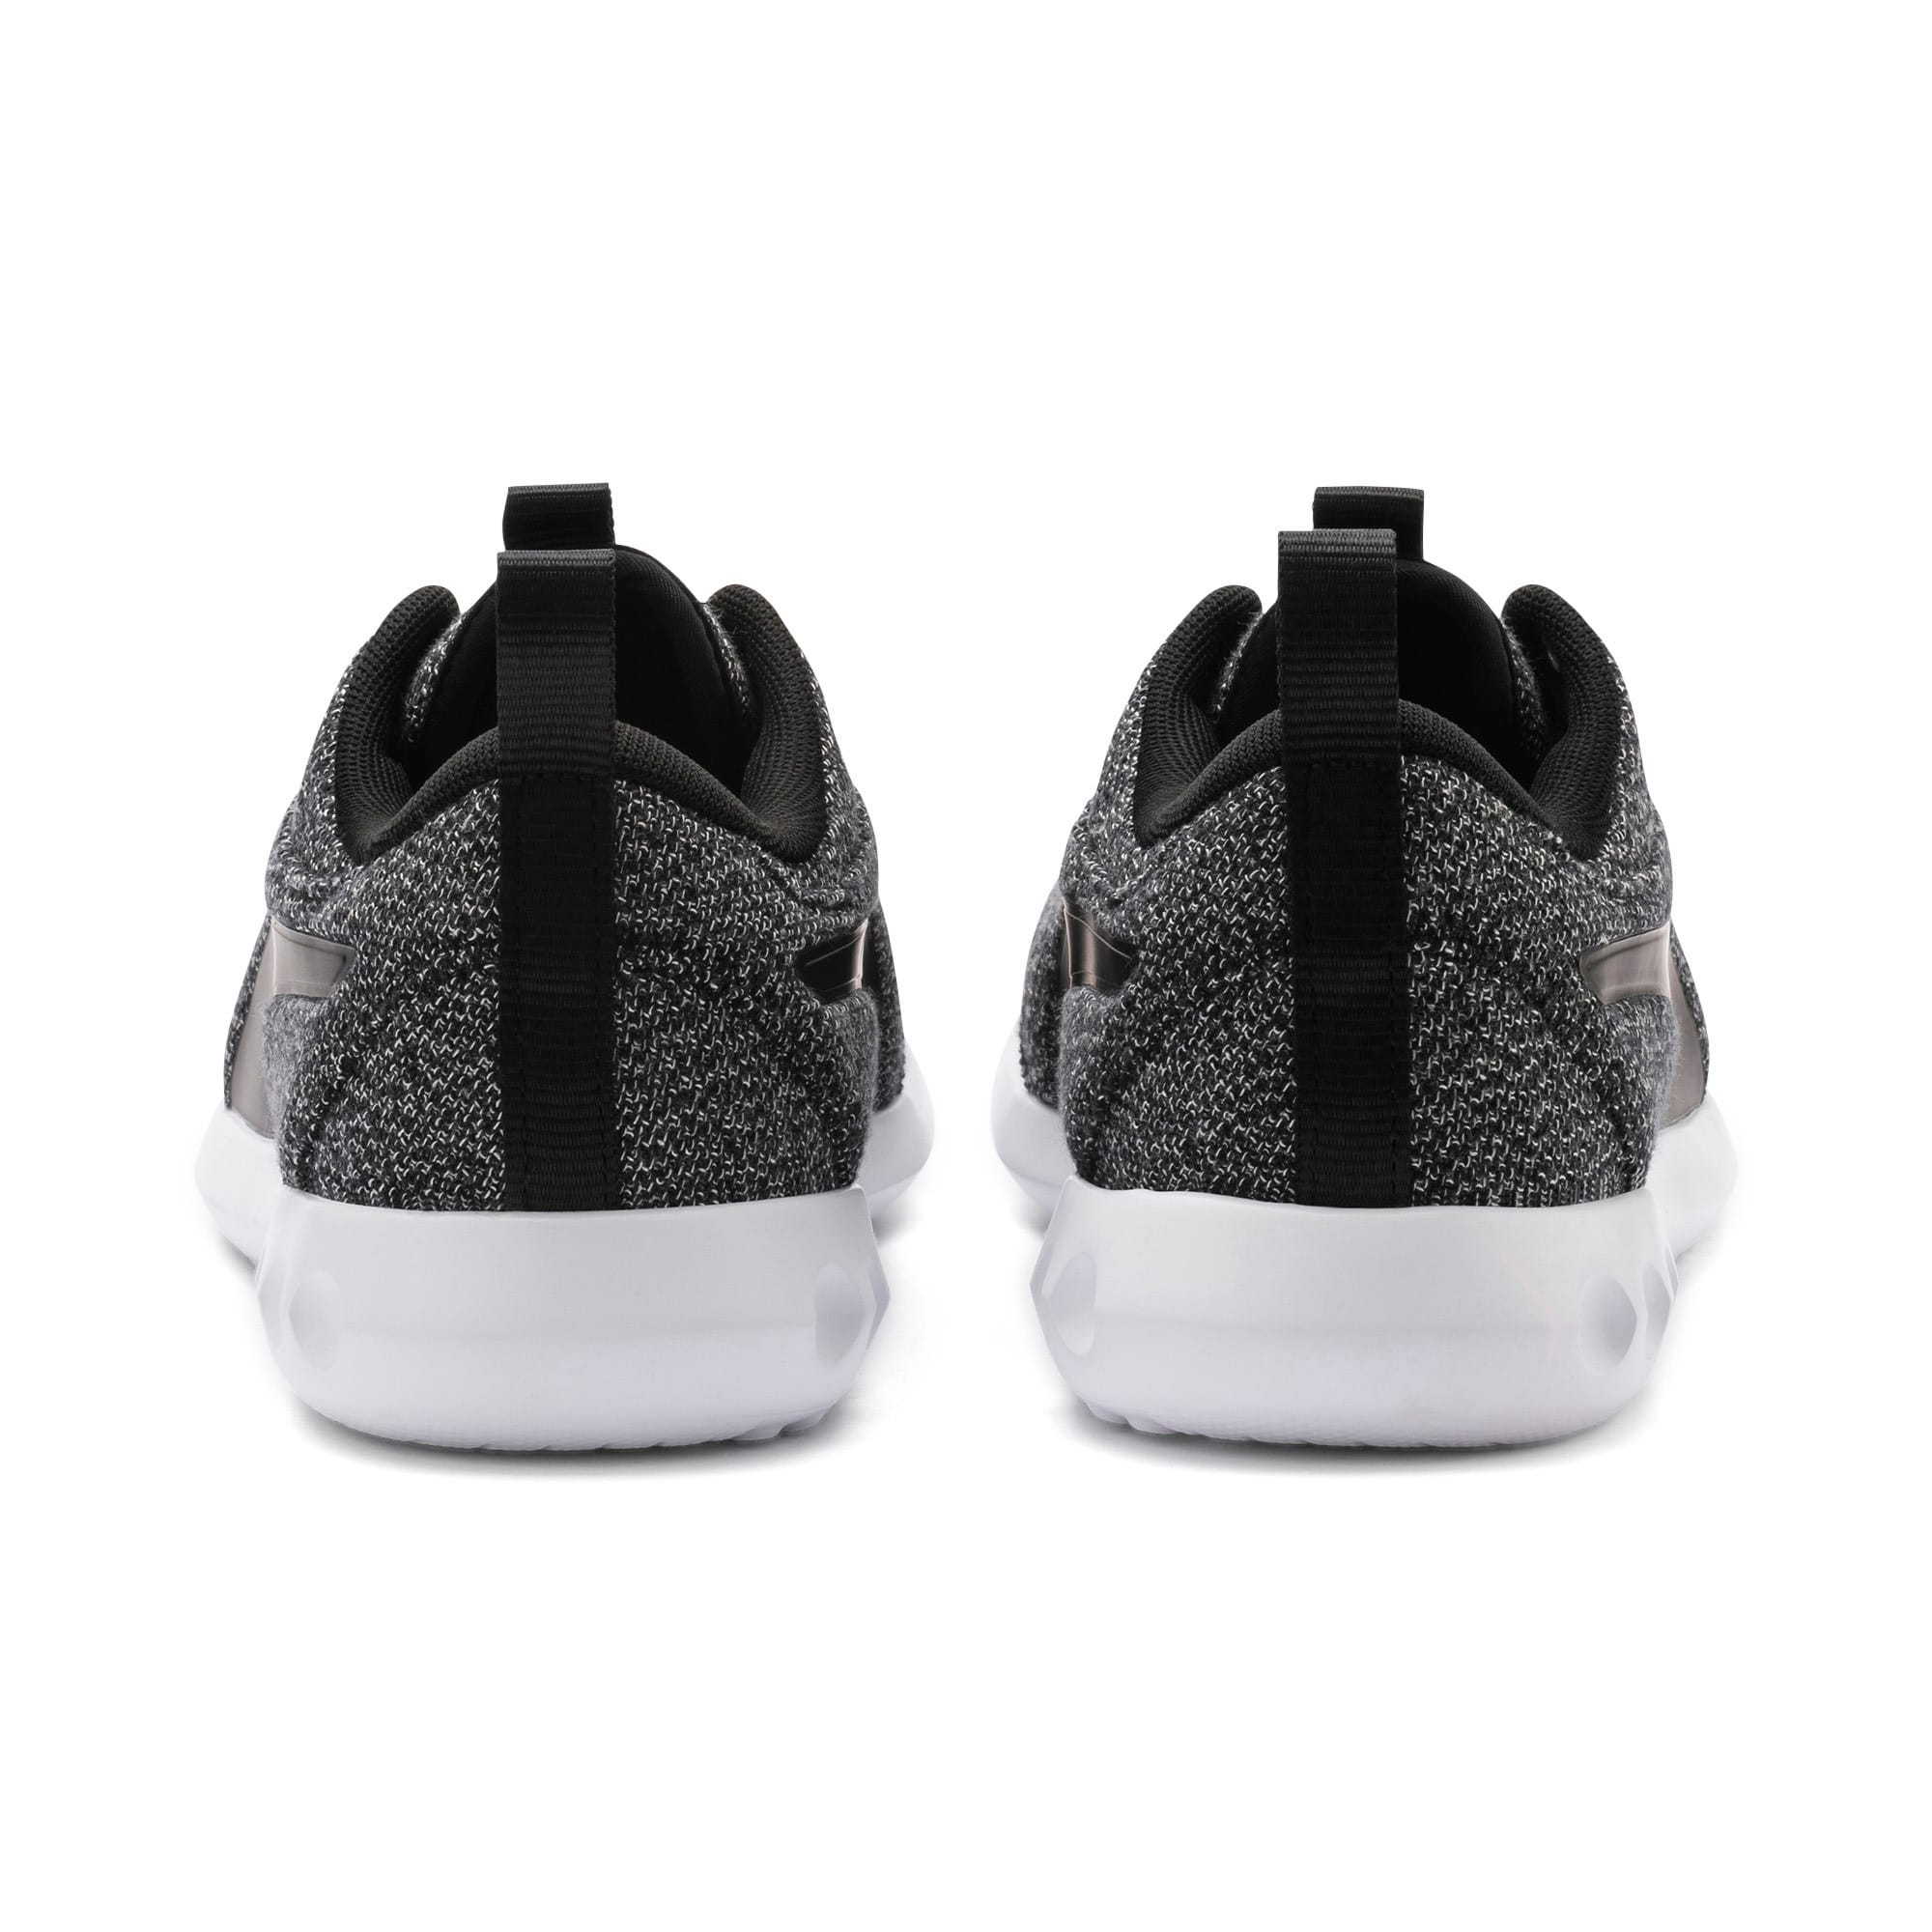 Thumbnail 3 of Carson 2 Knit Women's Trainers, Puma Black-Puma White, medium